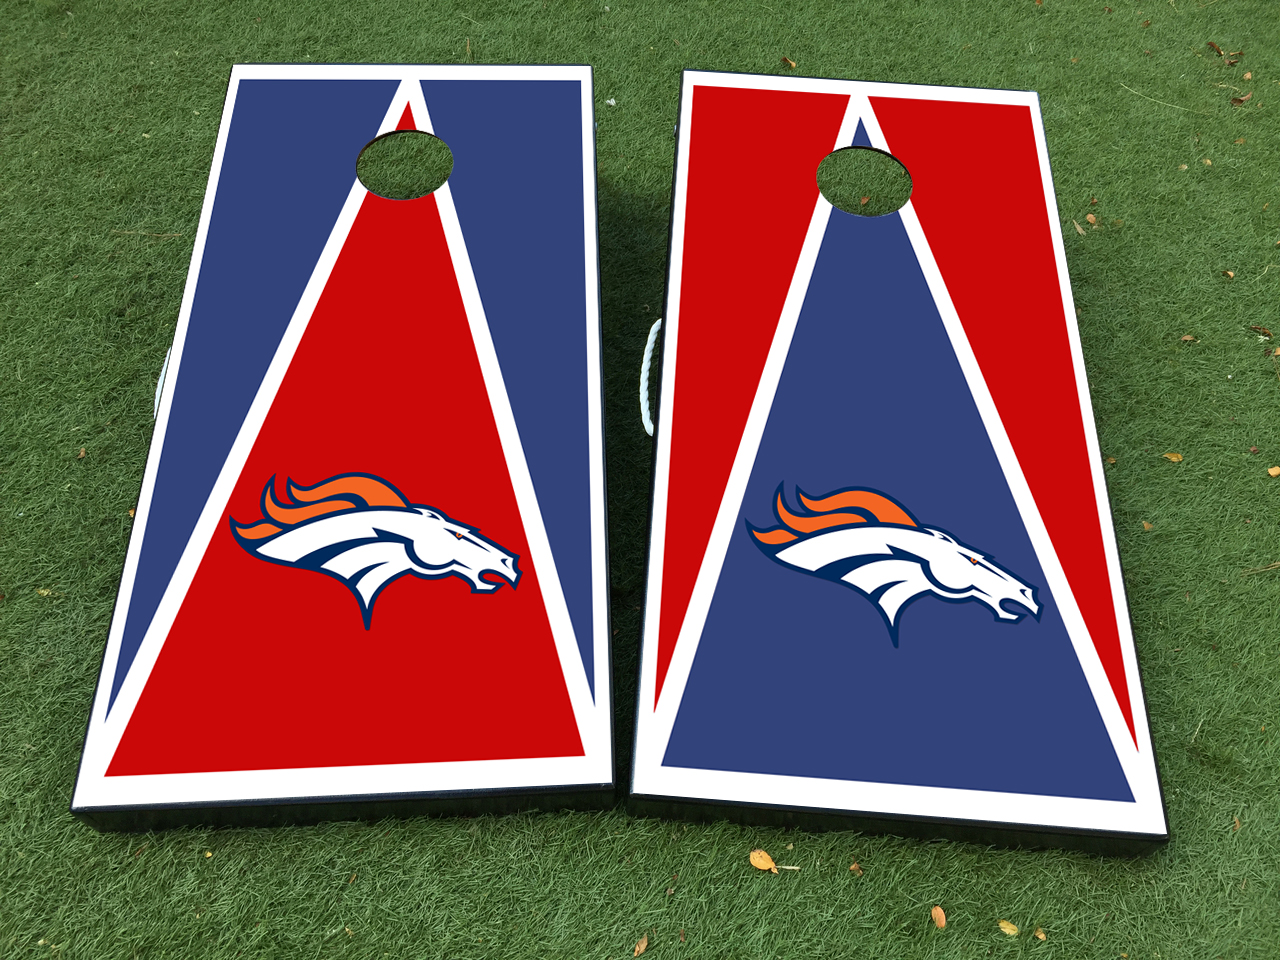 Denver Broncos Cornhole Board Game Decal VINYL WRAPS with LAMINATED